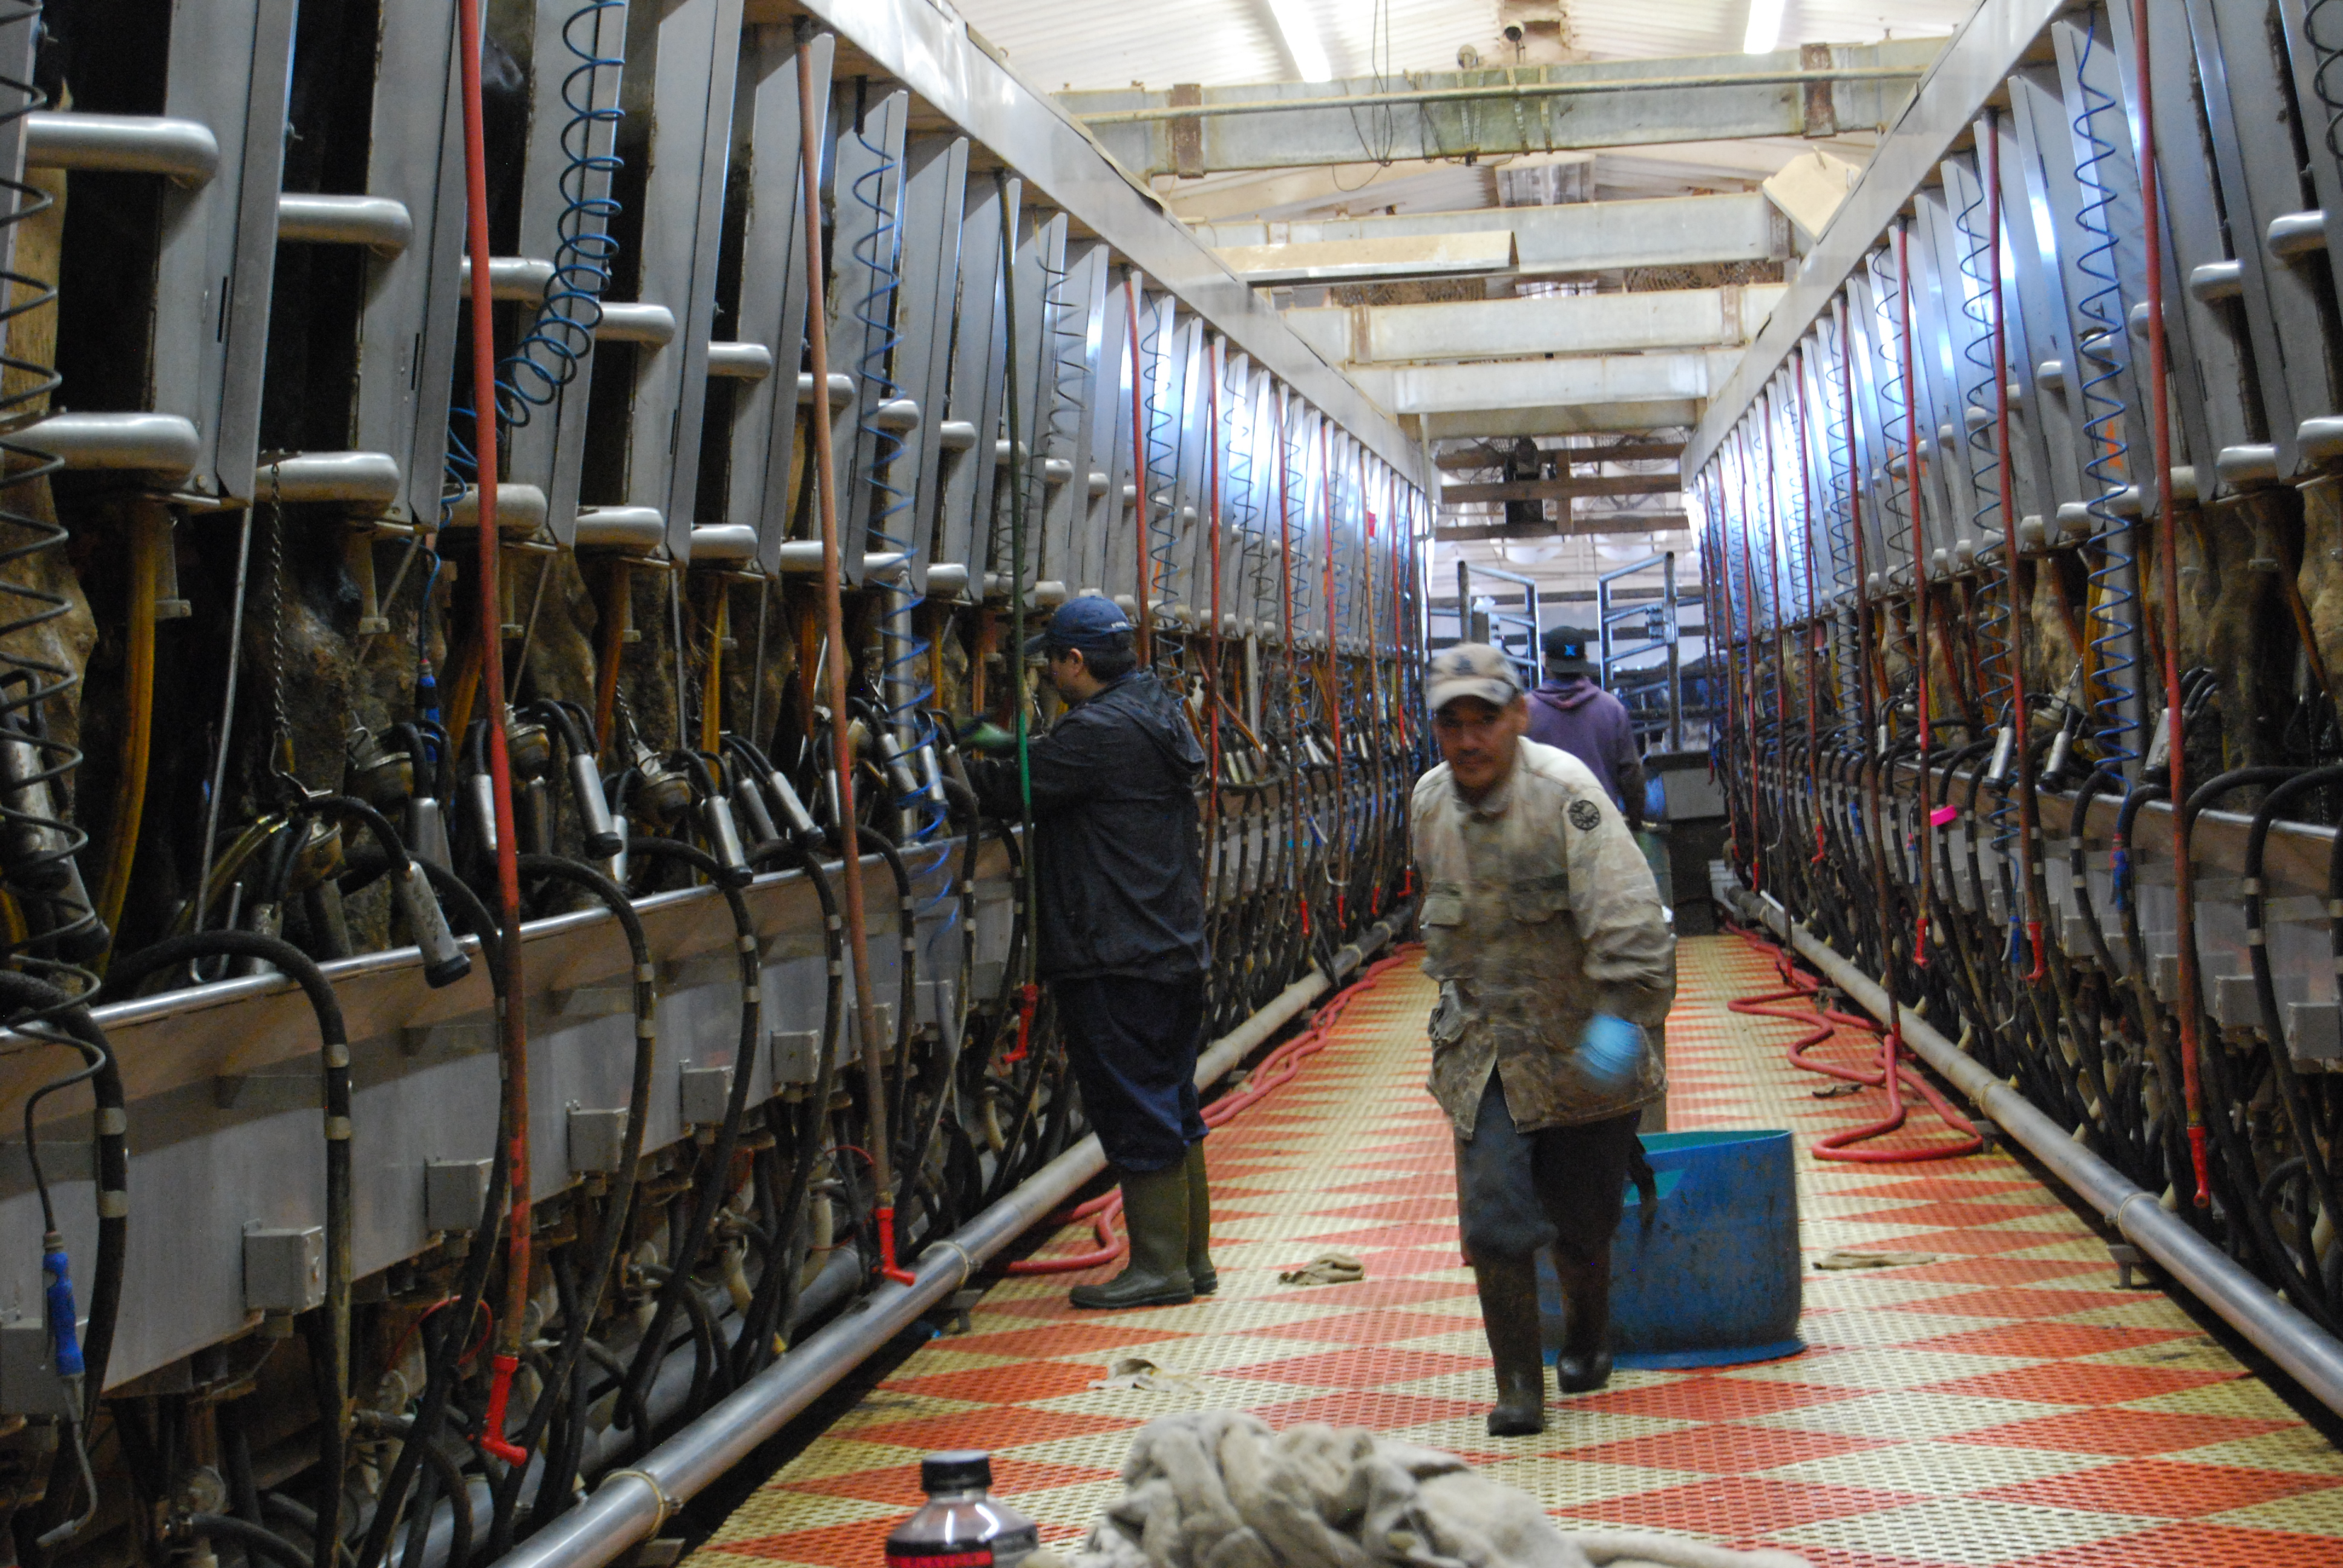 Perhaps 70 percent of workers at Idaho's dairy farms are foreign-born, mostly from Mexico, Guatemala, and Nicaragua